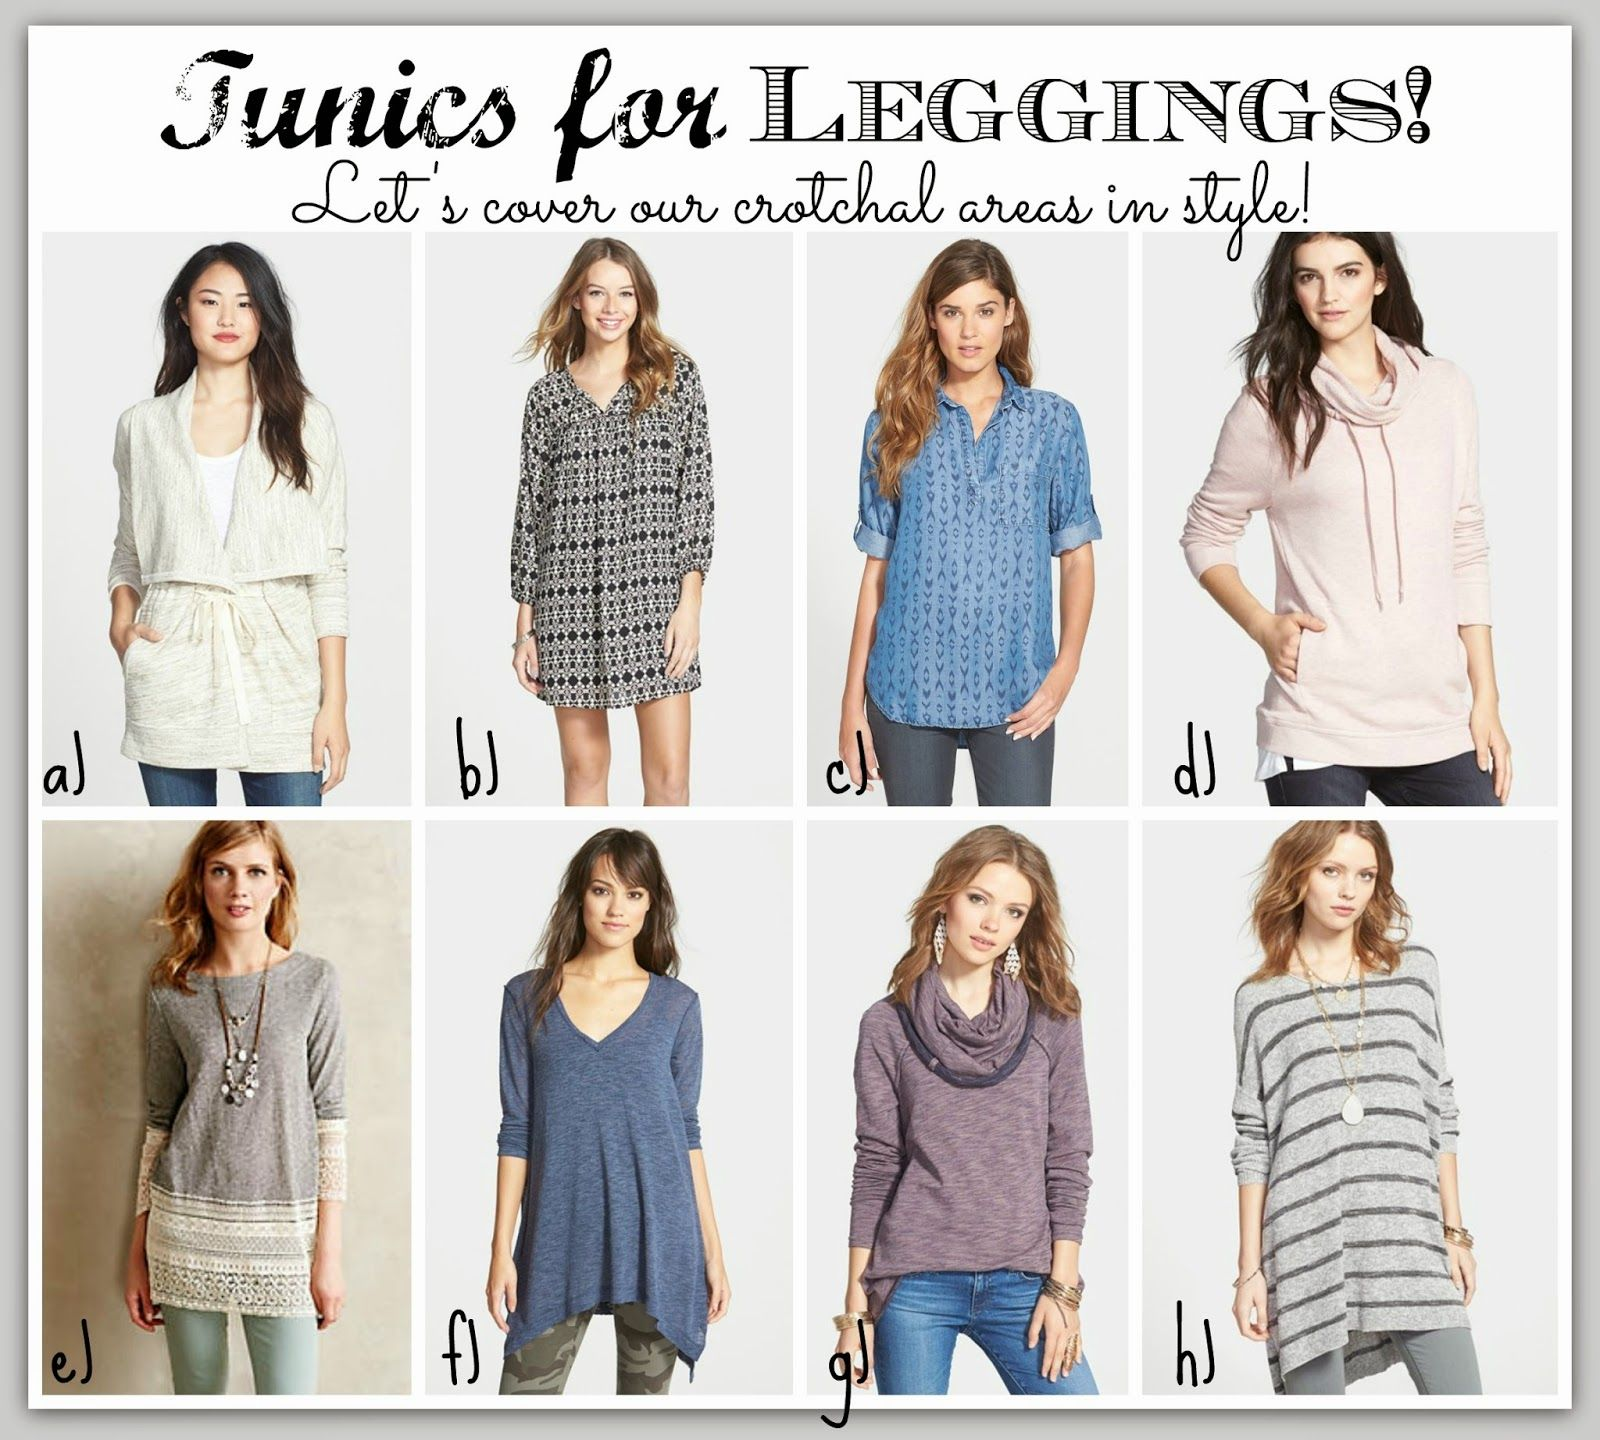 02c6f4966283 This post has LOTS AND LOTS of great ideas for tunics that are great with  jeans AND are long enough to wear with leggings!